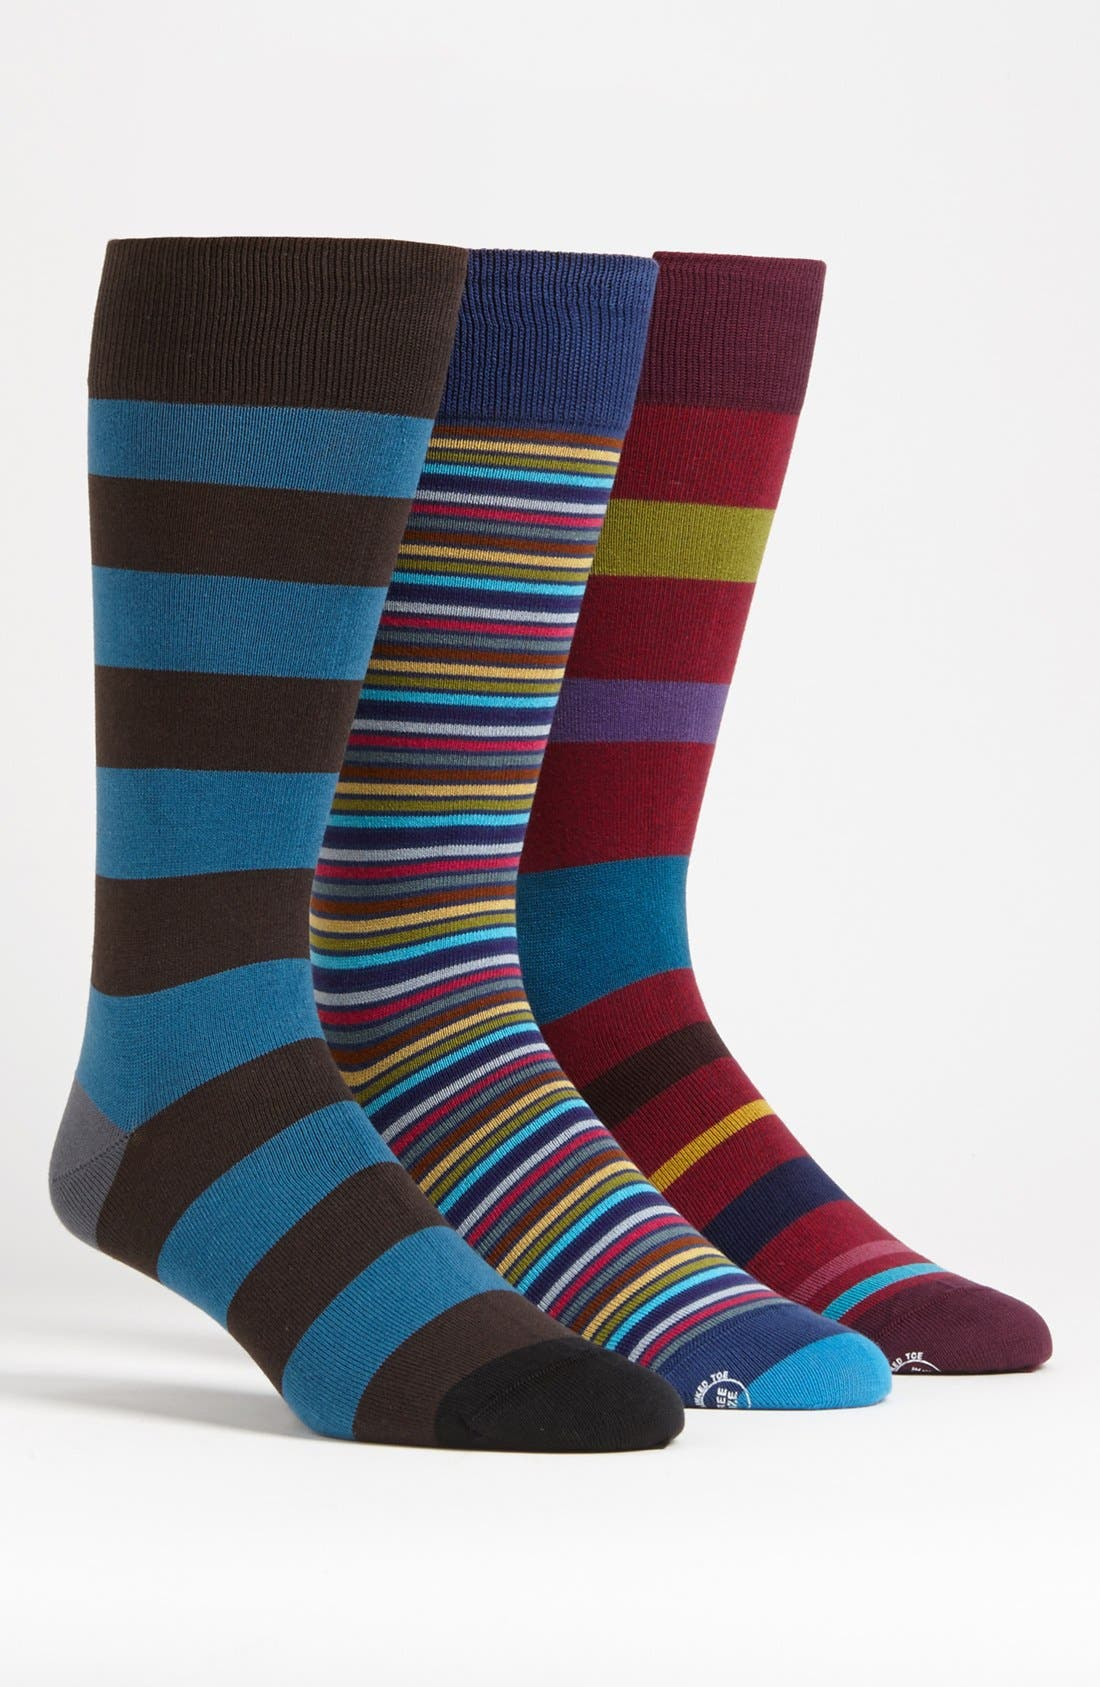 Main Image - Paul Smith Accessories Socks (3-Pack)